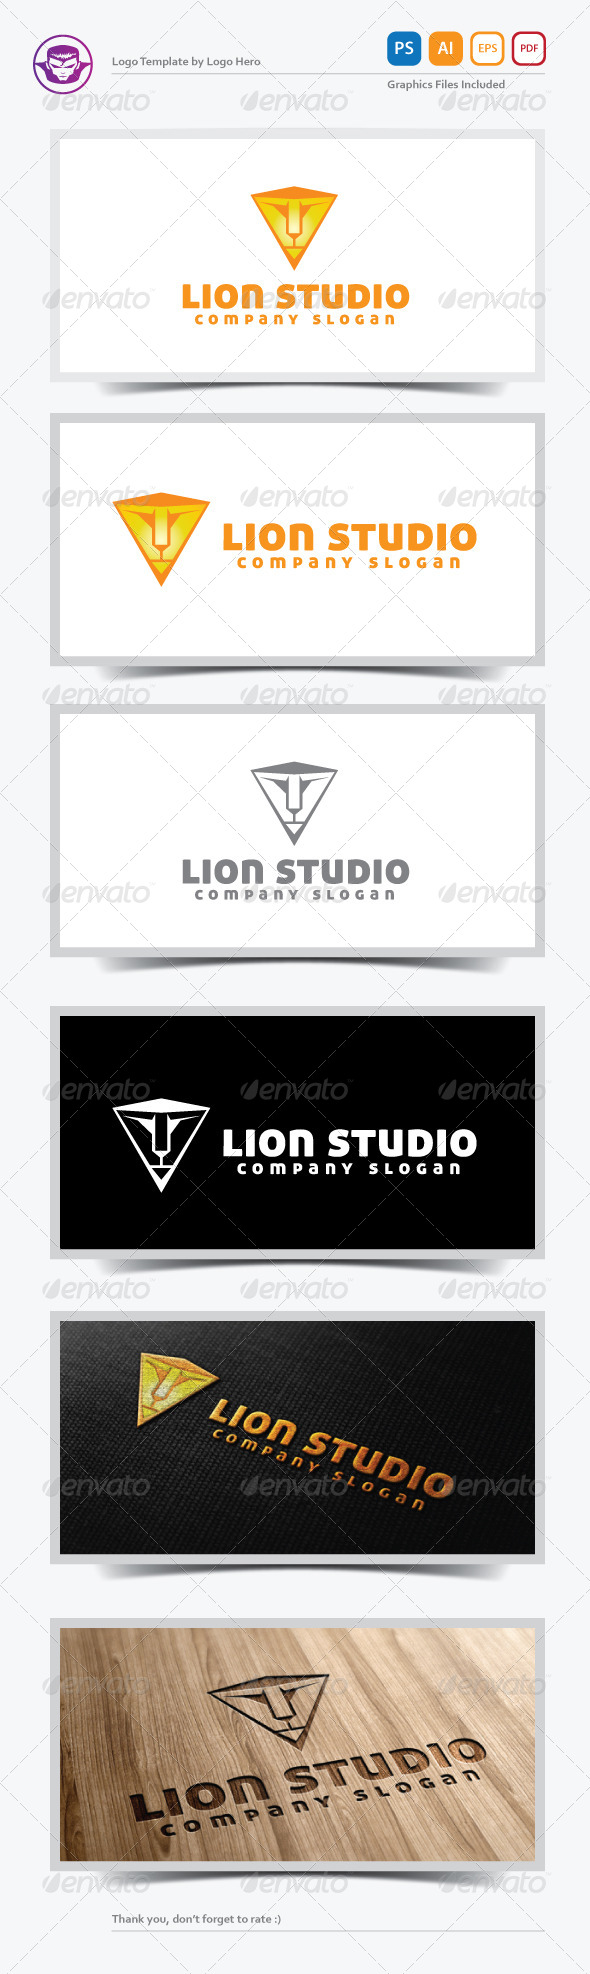 GraphicRiver Lion Studio Logo Template 5505283